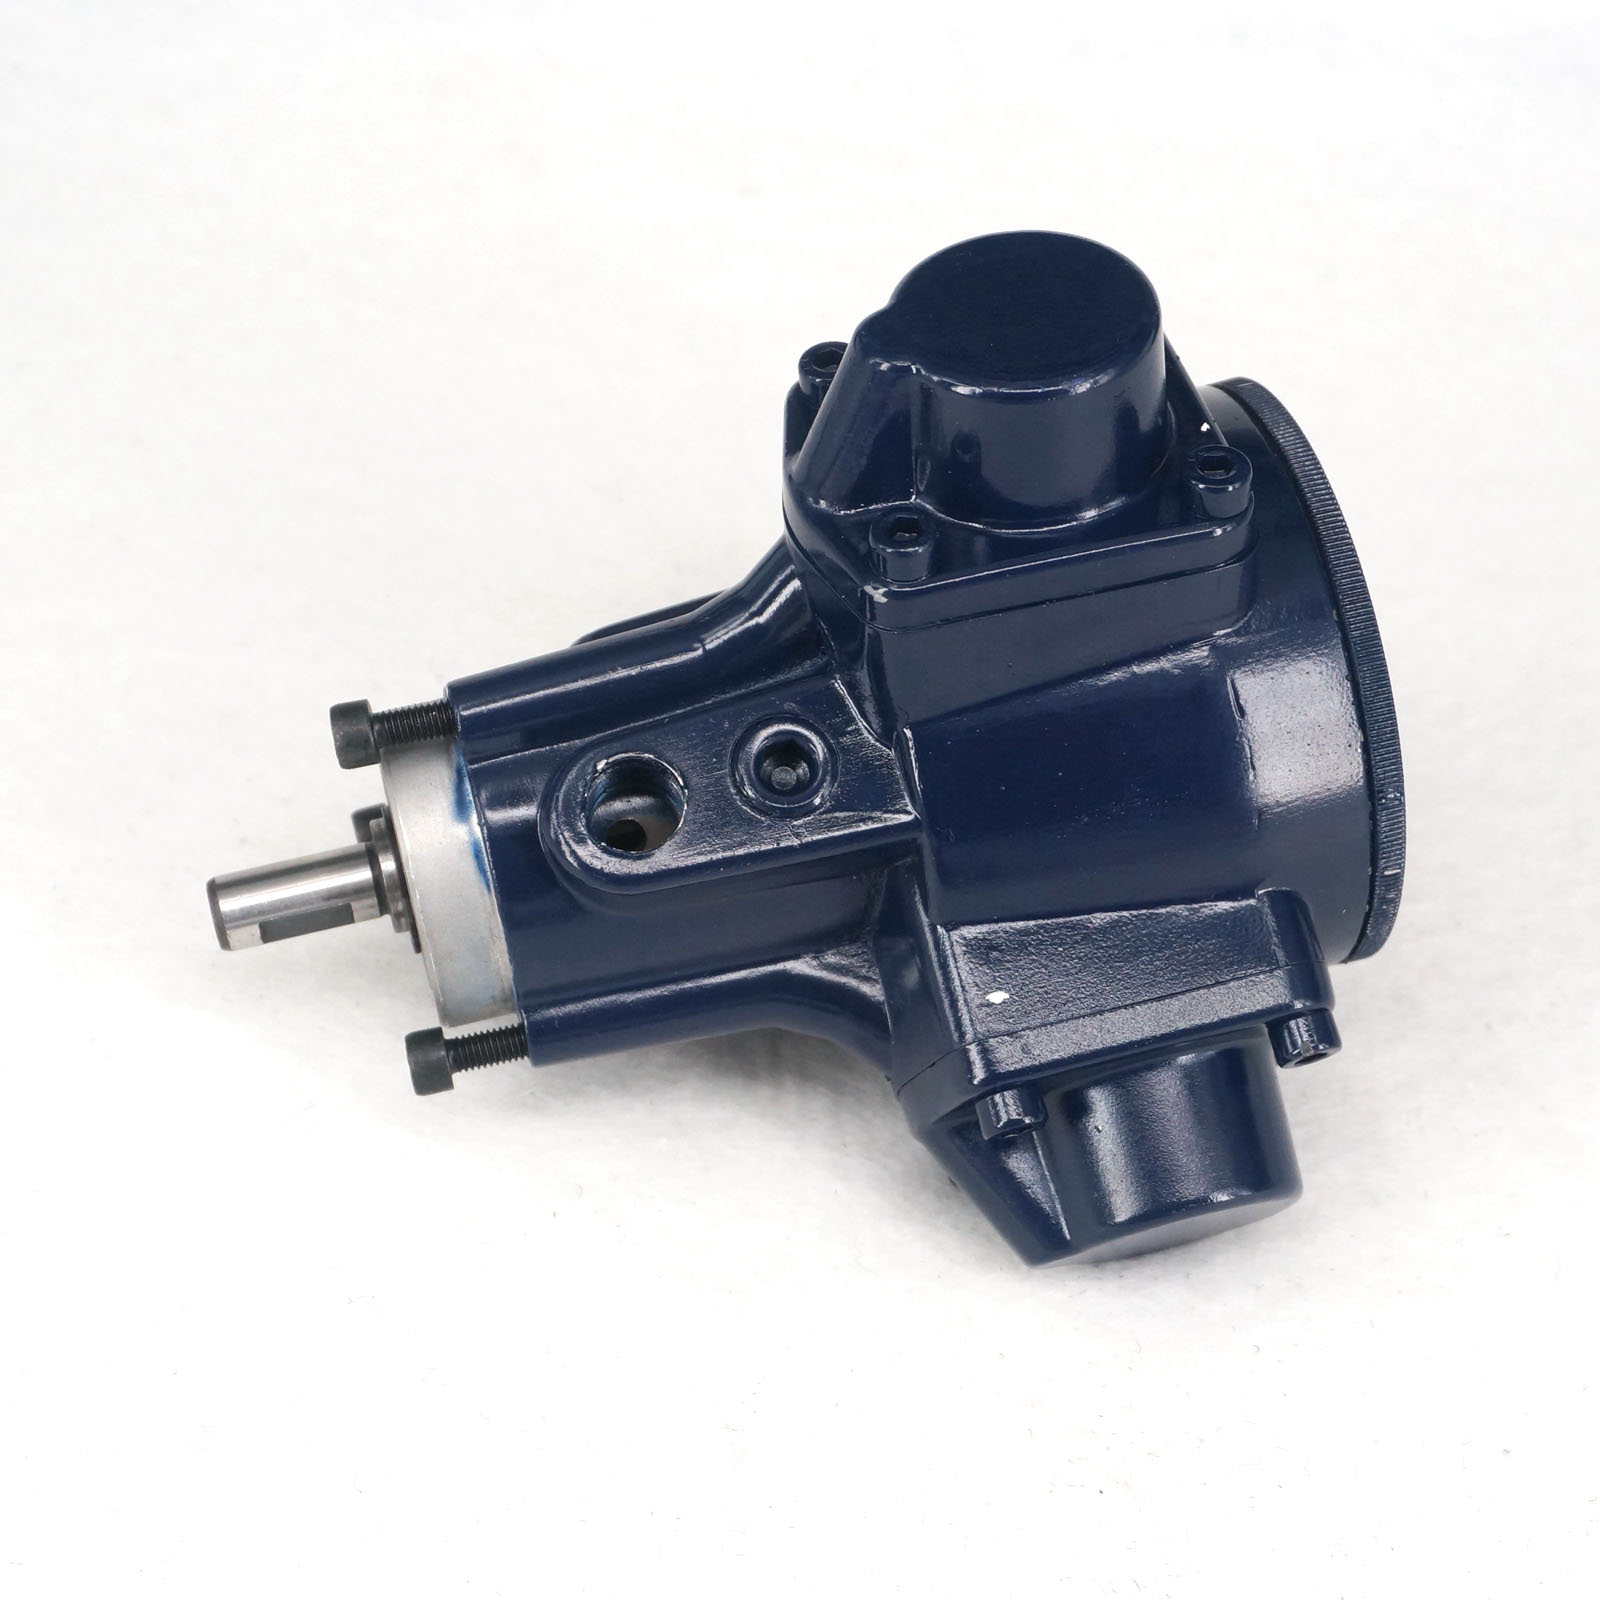 1 8hp piston air motor triplex cylinder type 2500rpm drive for Piston type air motor